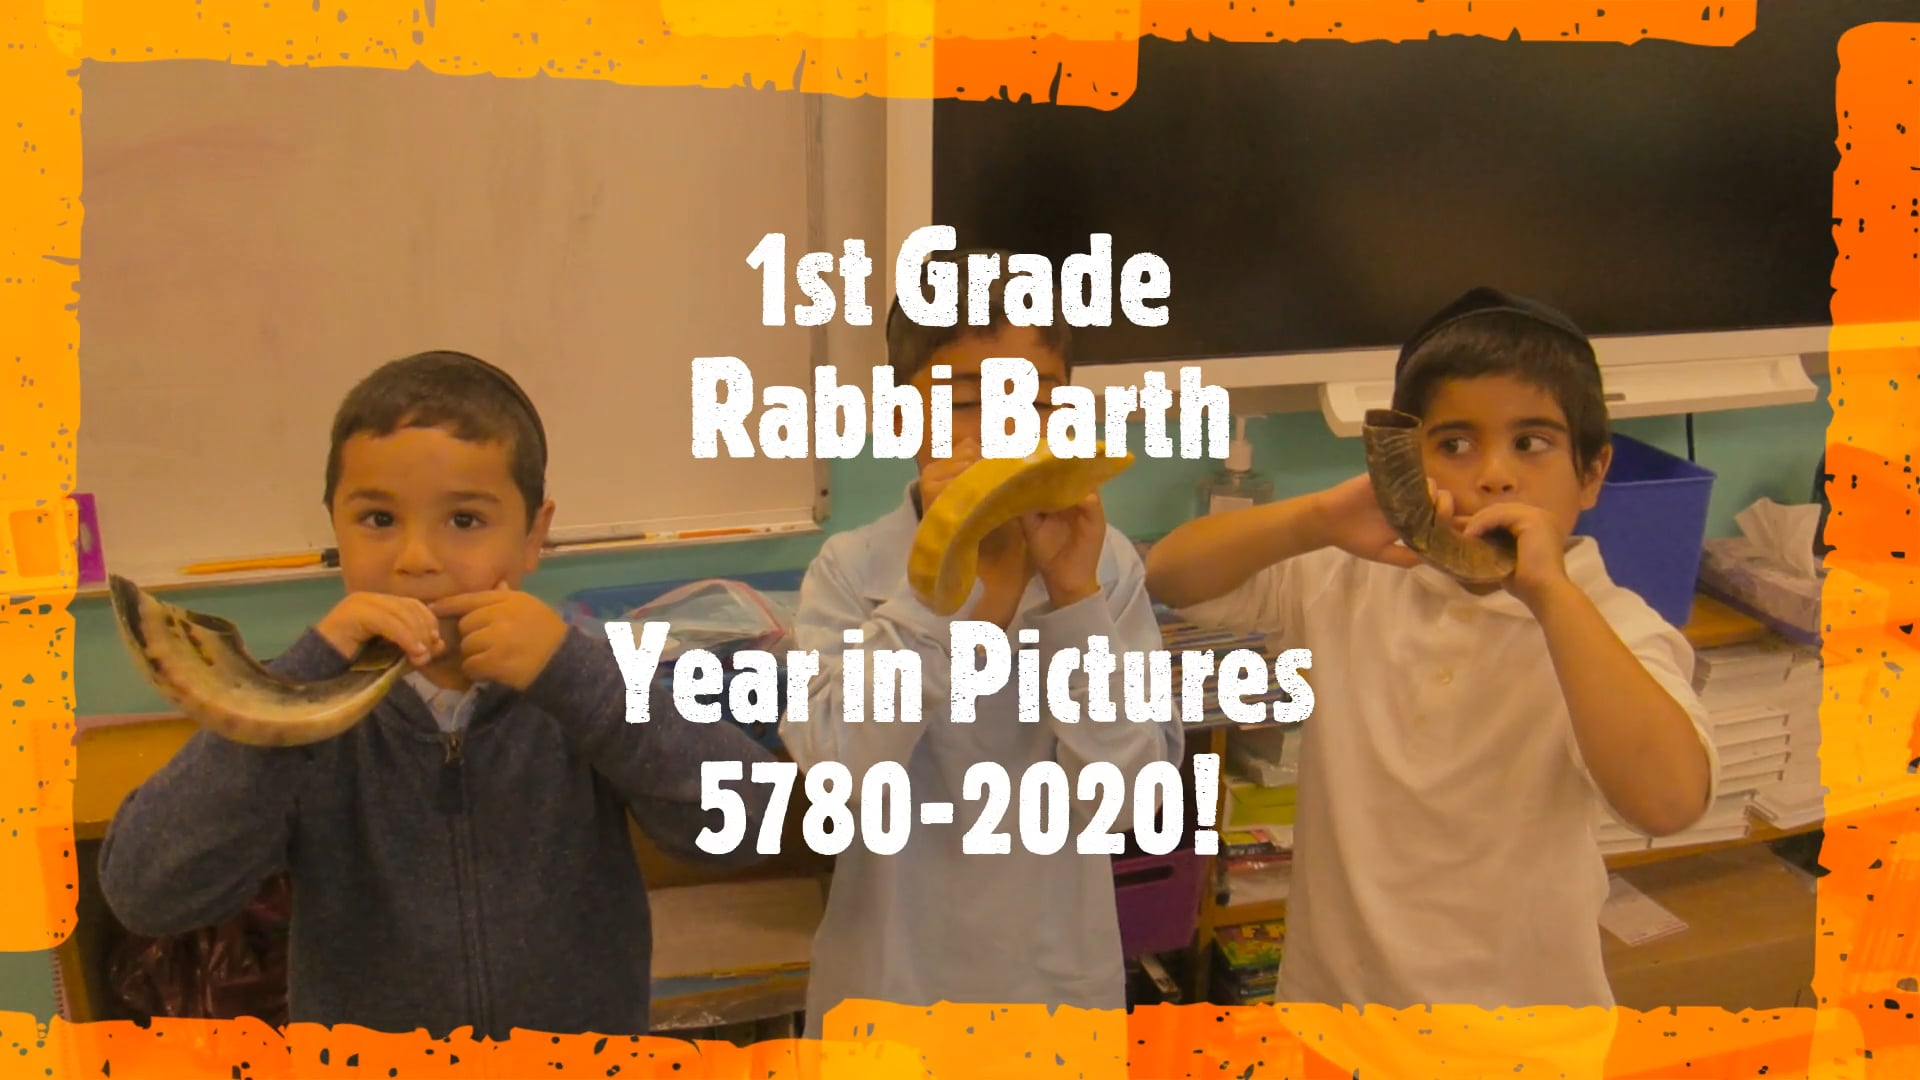 1st Grade - Rabbi Barth: Year in Pictures 2019-2020!